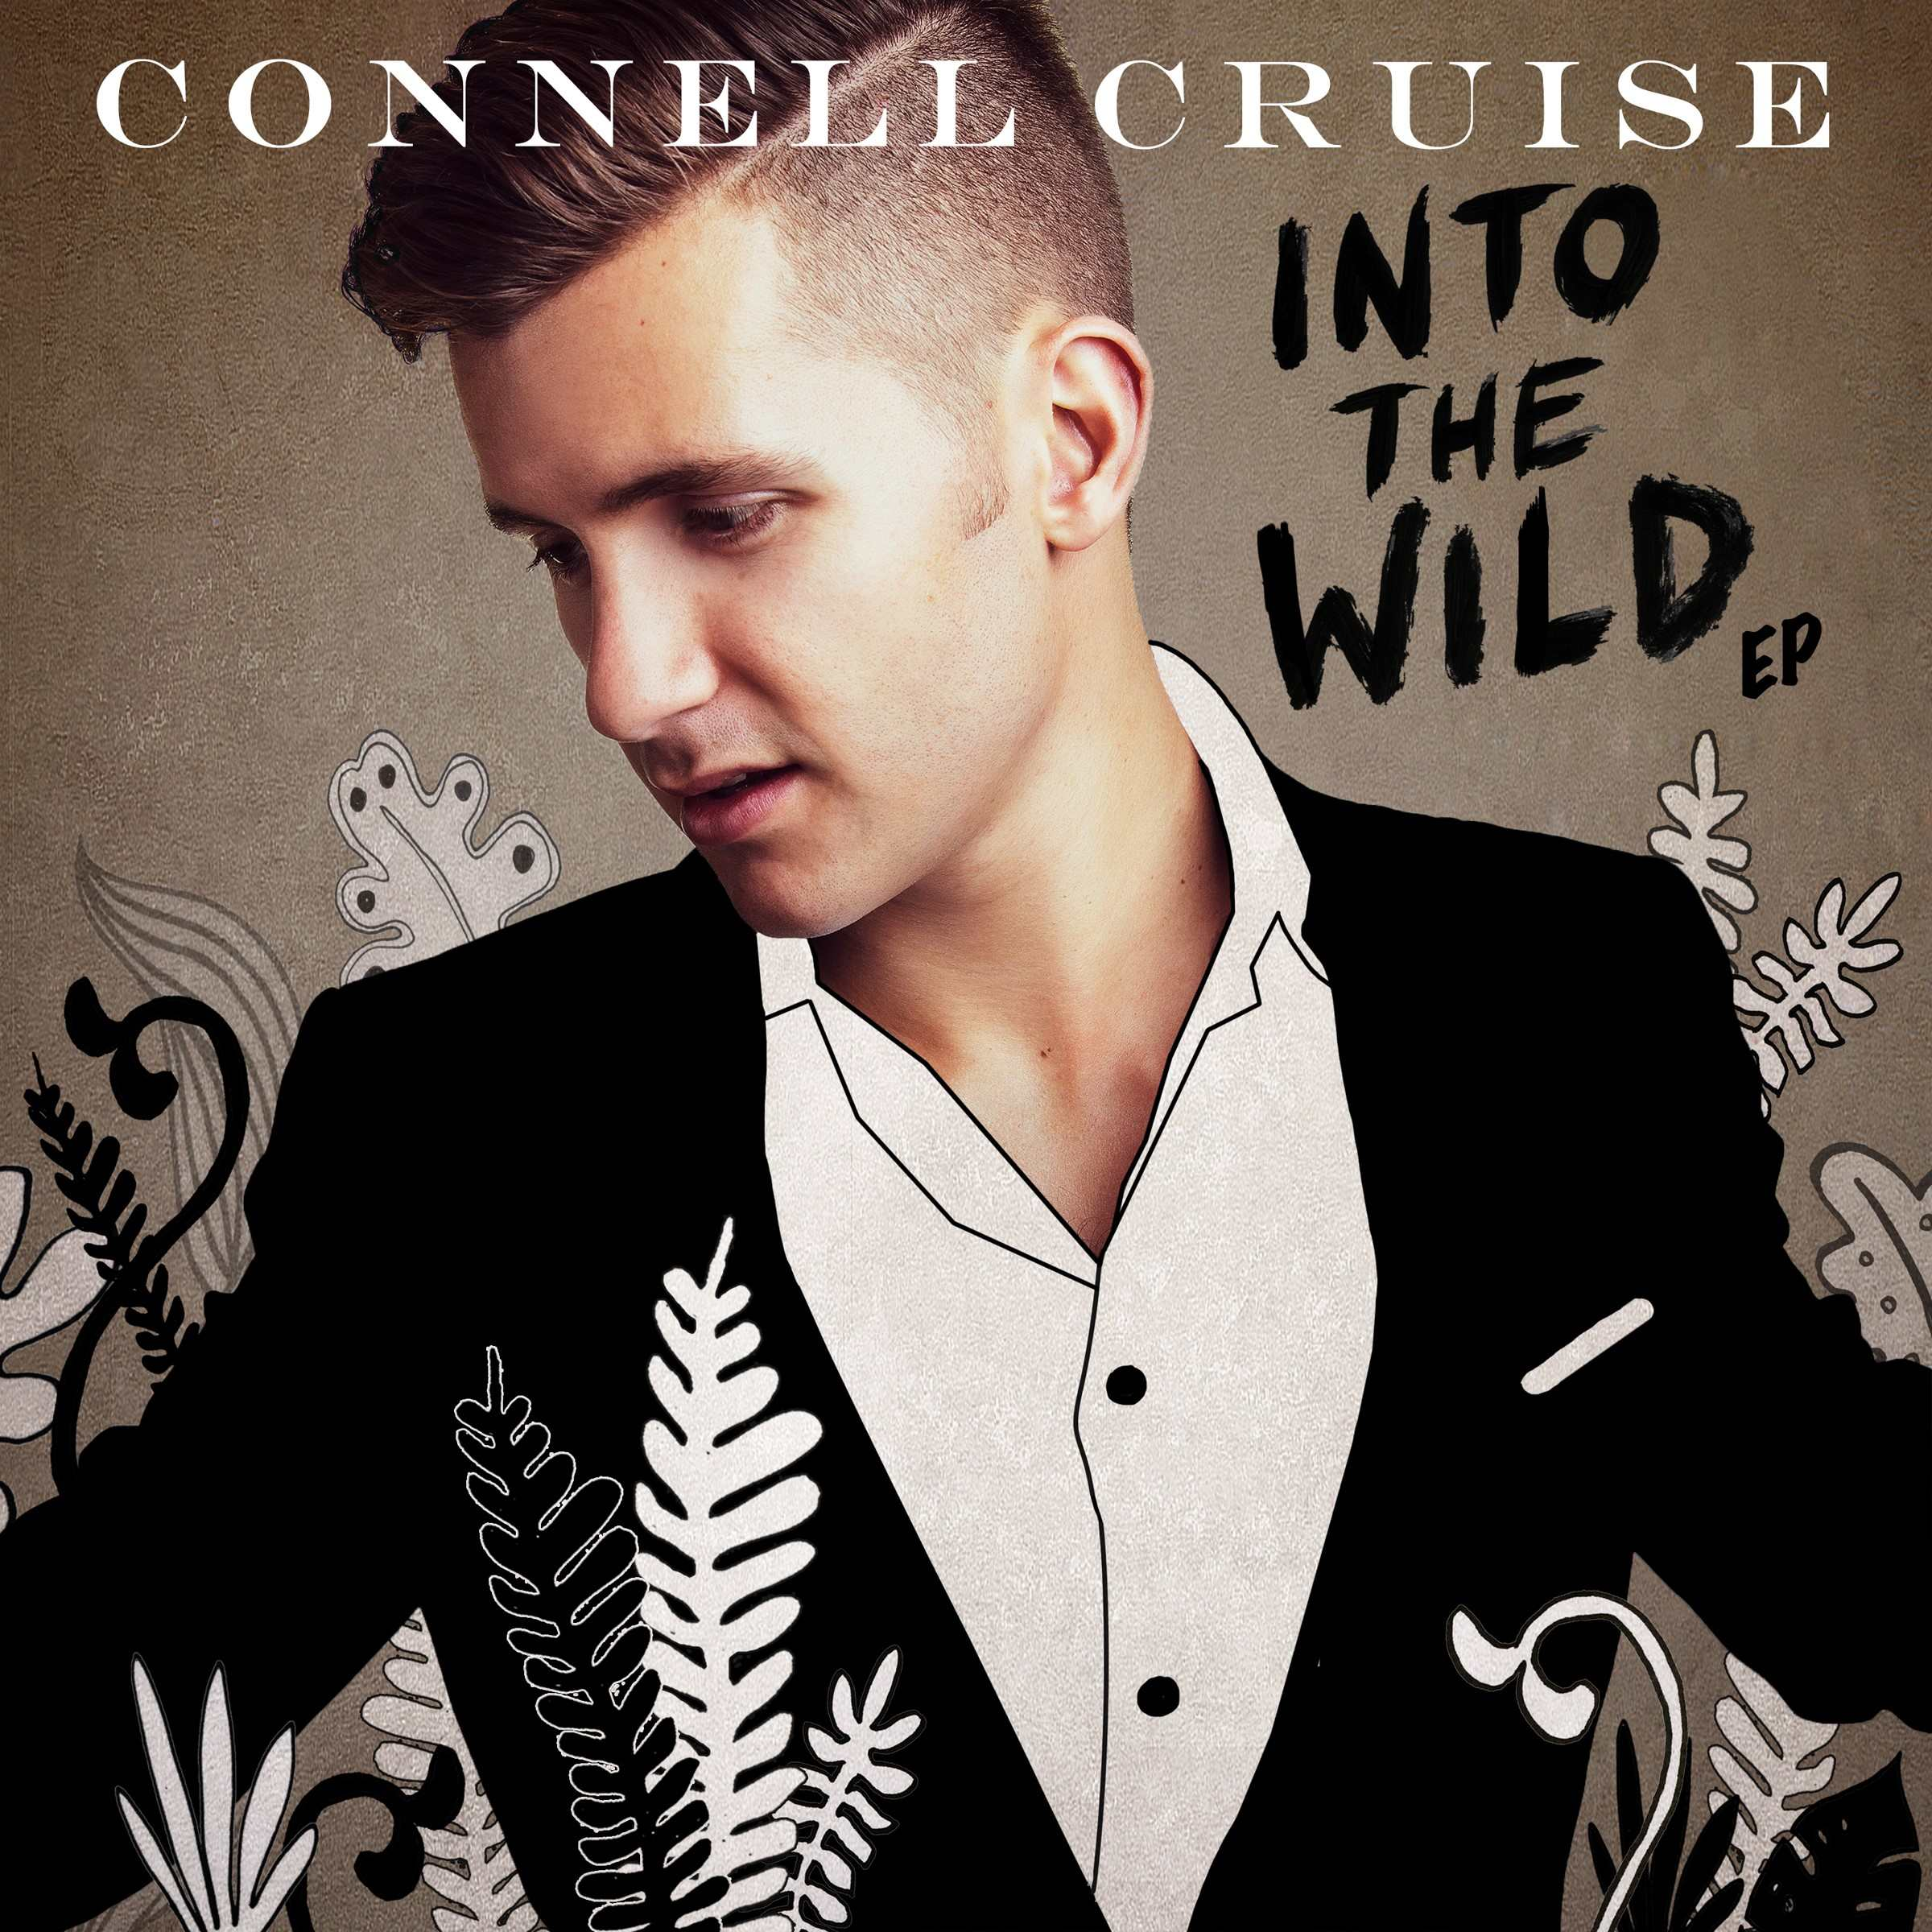 CONNELL CRUISE Releases INTO THE WILD EP NEW VIDEO and SINGLE ...